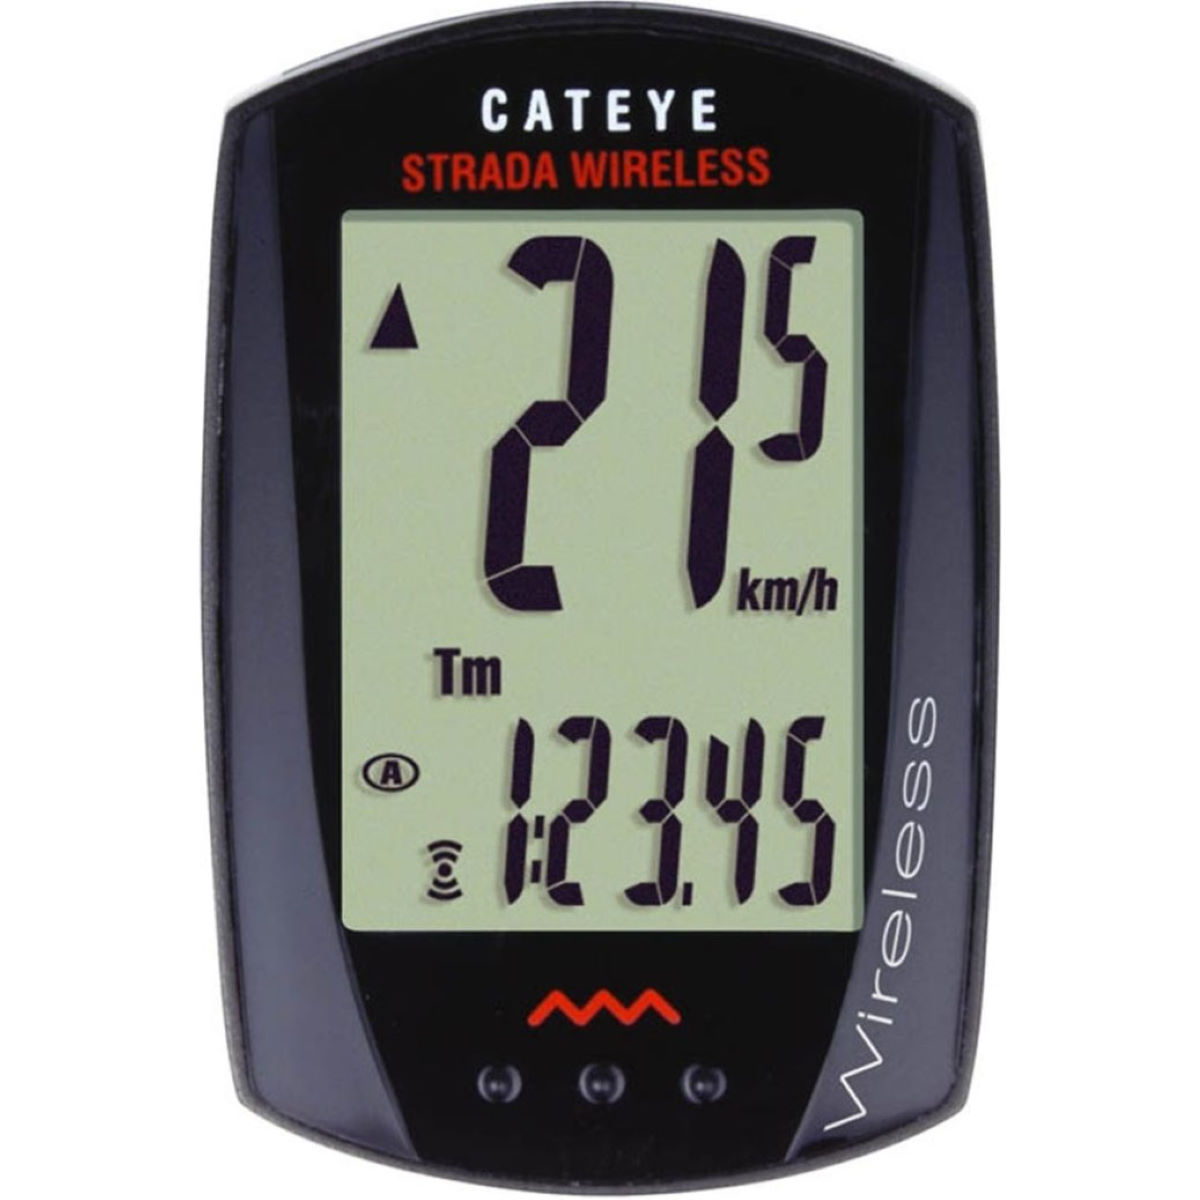 Cateye Strada Wireless 8 Function - RD300W - Cuentakilómetros